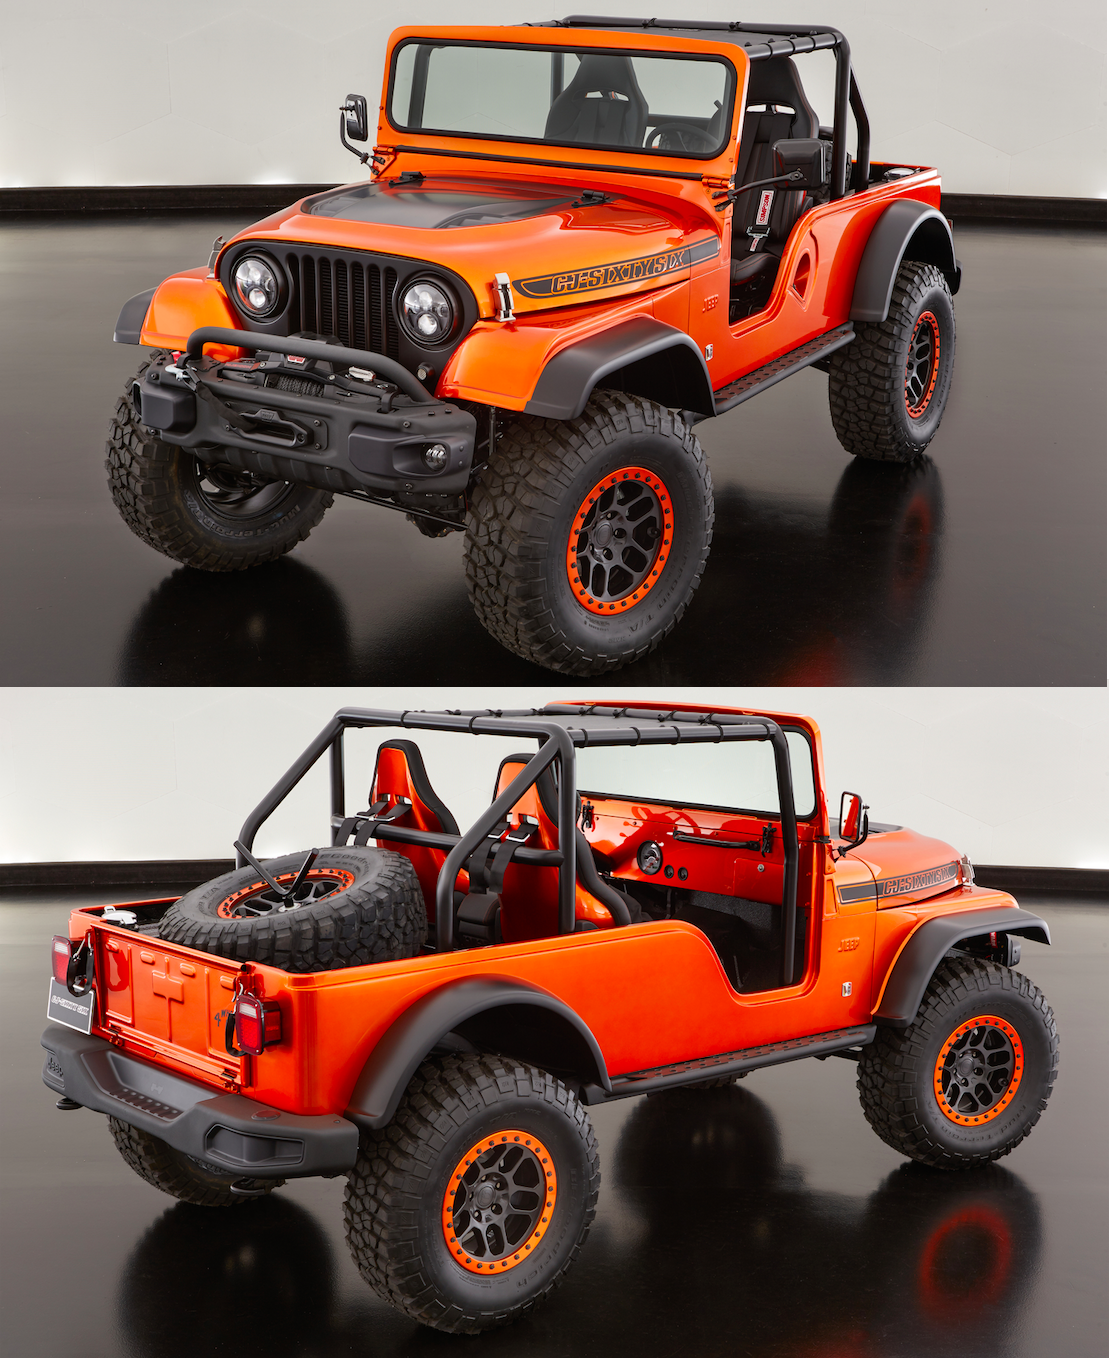 Jeep Built A Modern Cj 6 And It Looks Incredible Jeep Cj Jeep